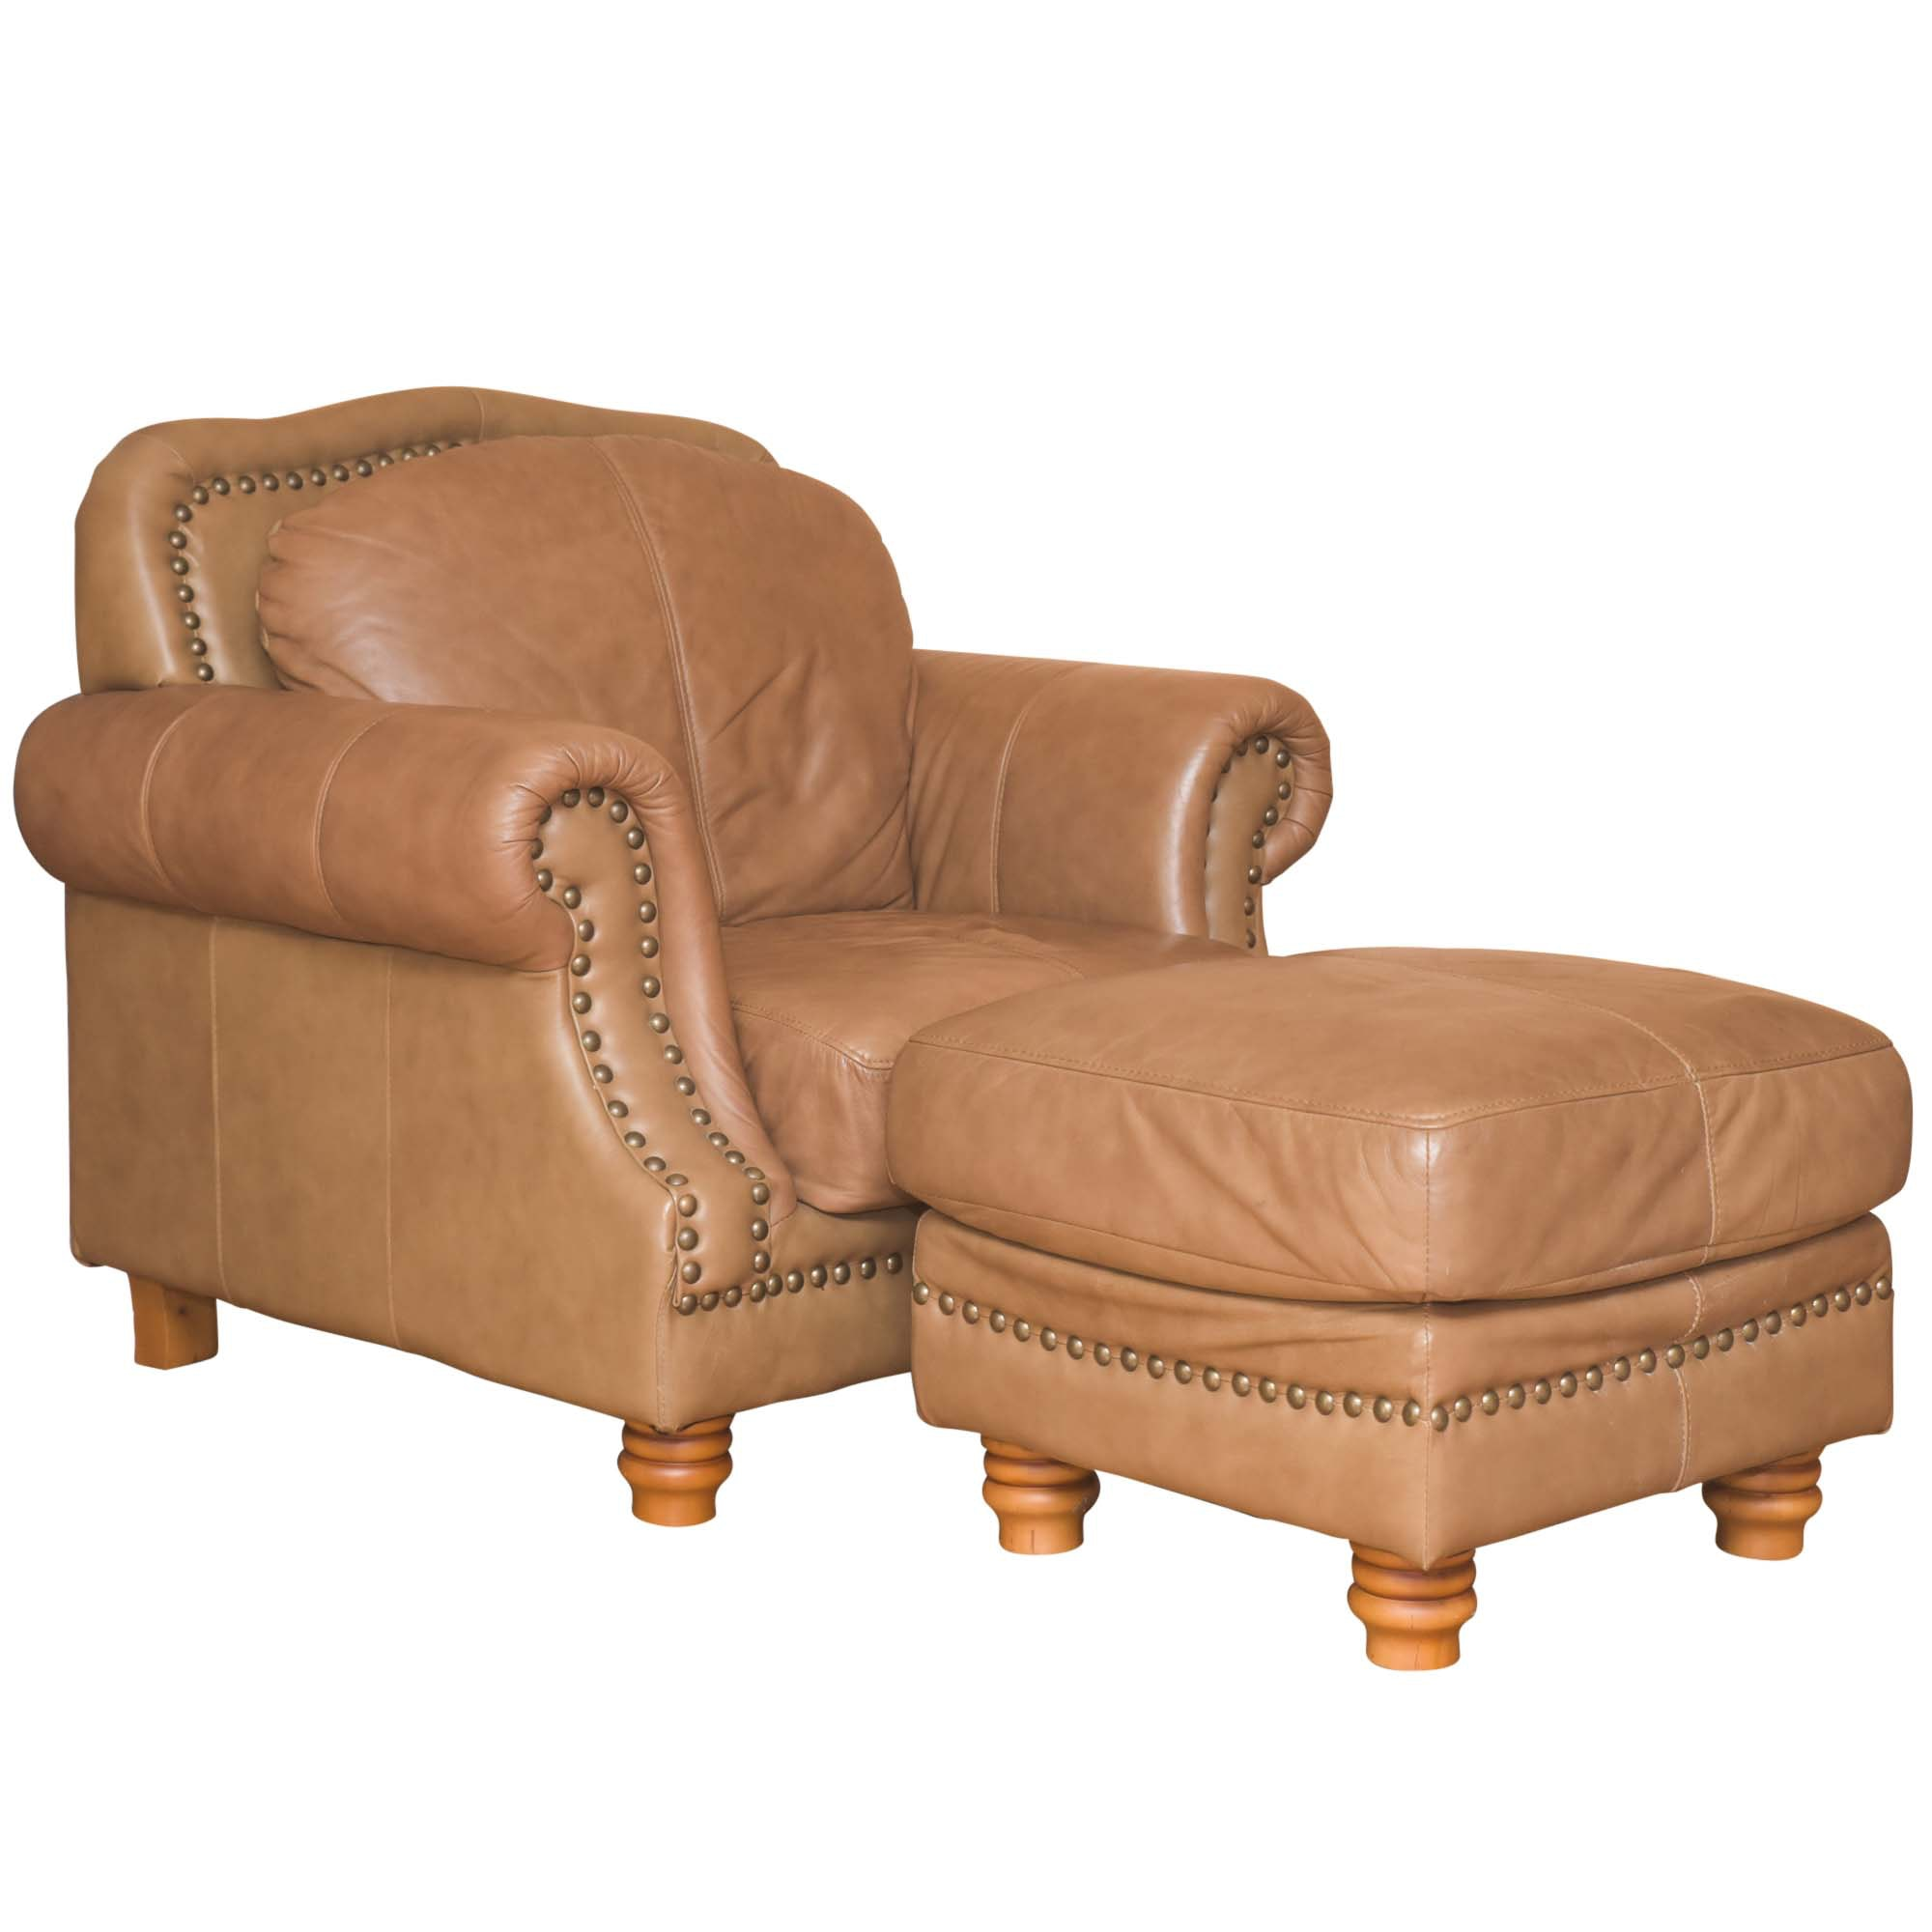 Light Brown Leather Armchair and Ottoman